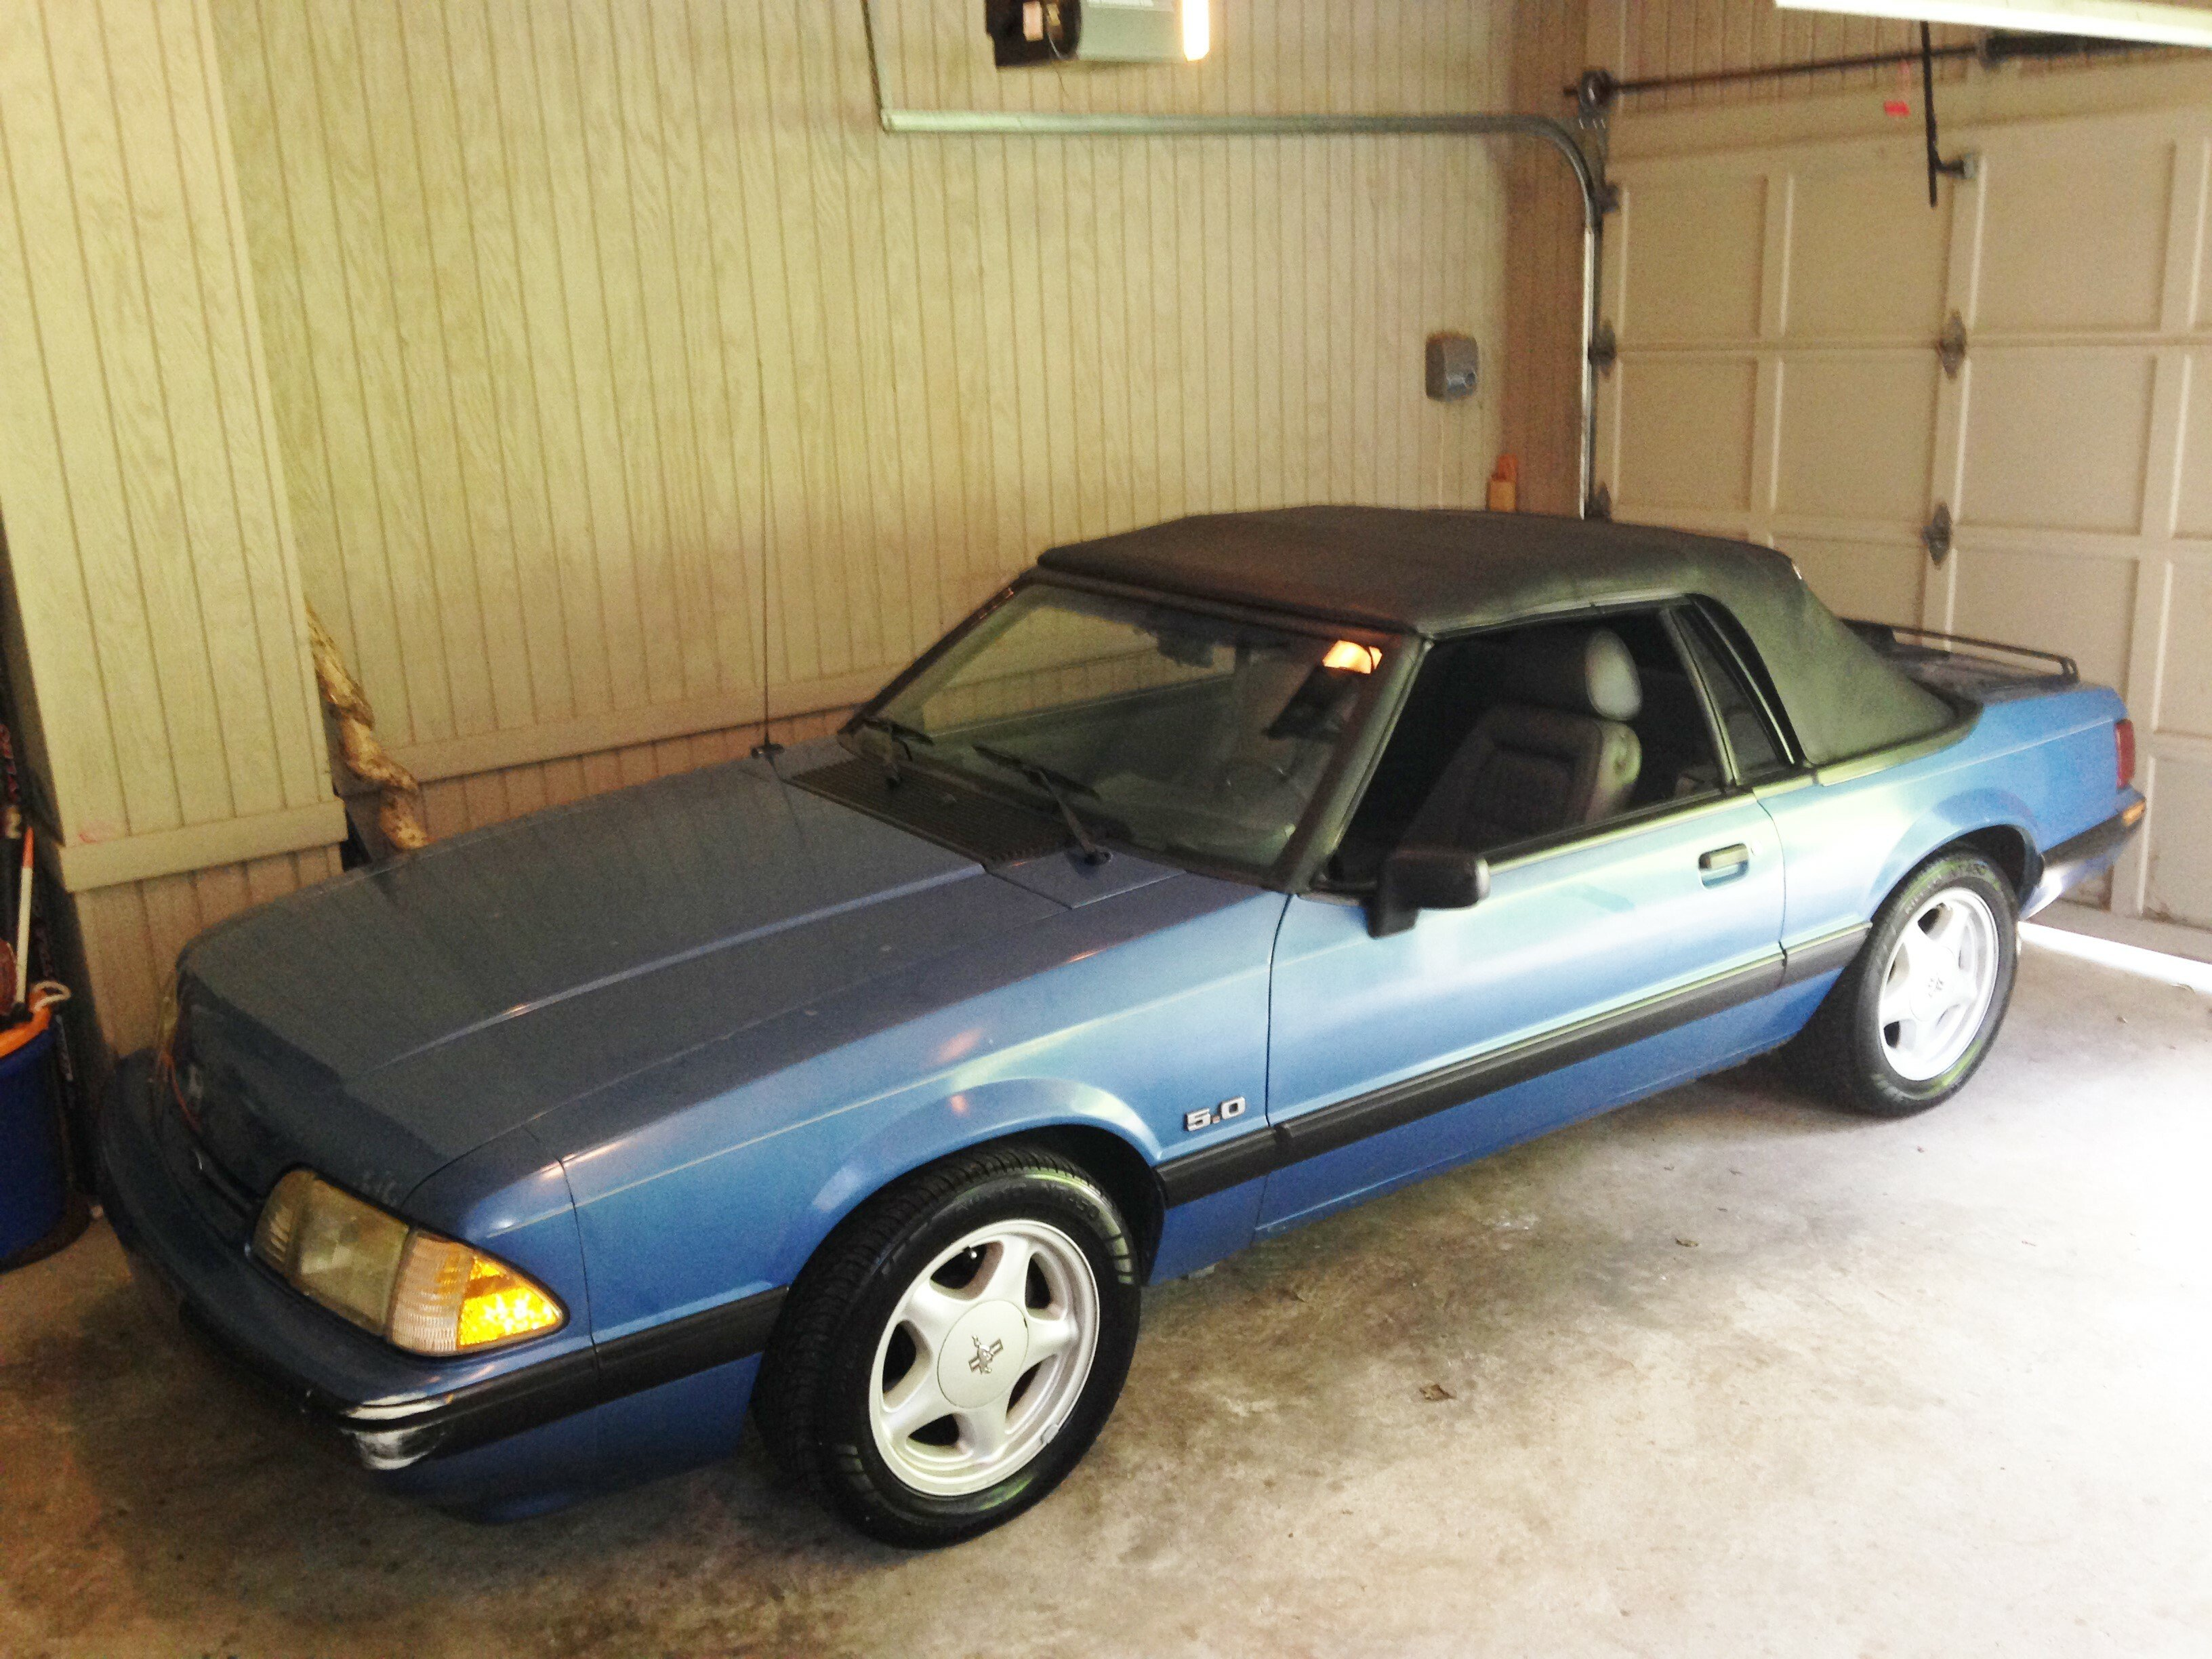 1989 Ford Mustang LX Convertible for sale 100881196 & Ford Classics for Sale - Classics on Autotrader markmcfarlin.com